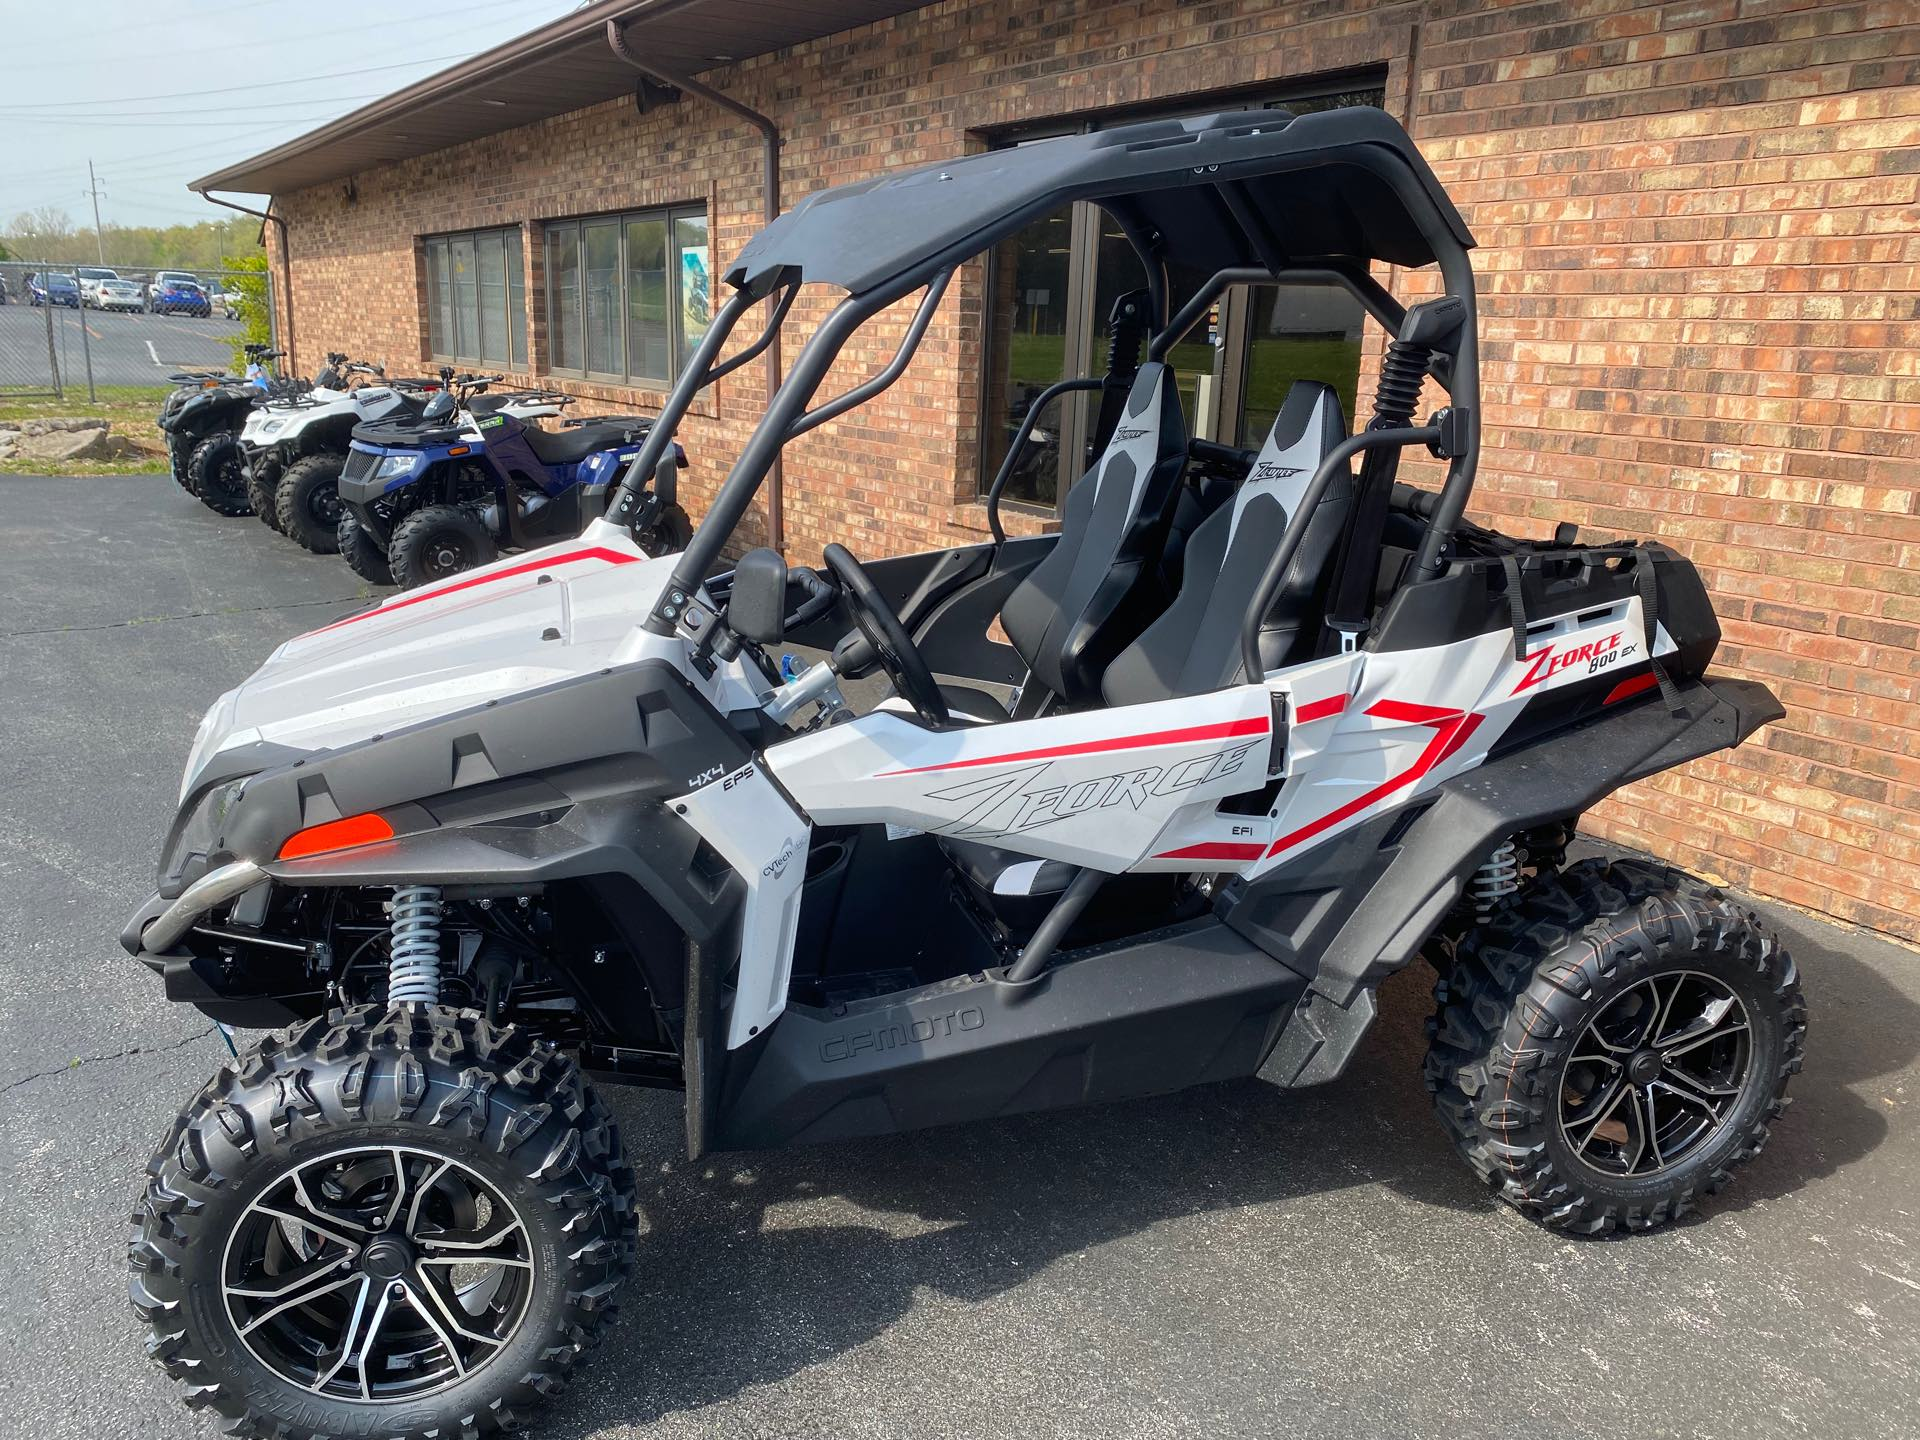 2021 CFMOTO ZFORCE 800 EX at Gold Star Outdoors